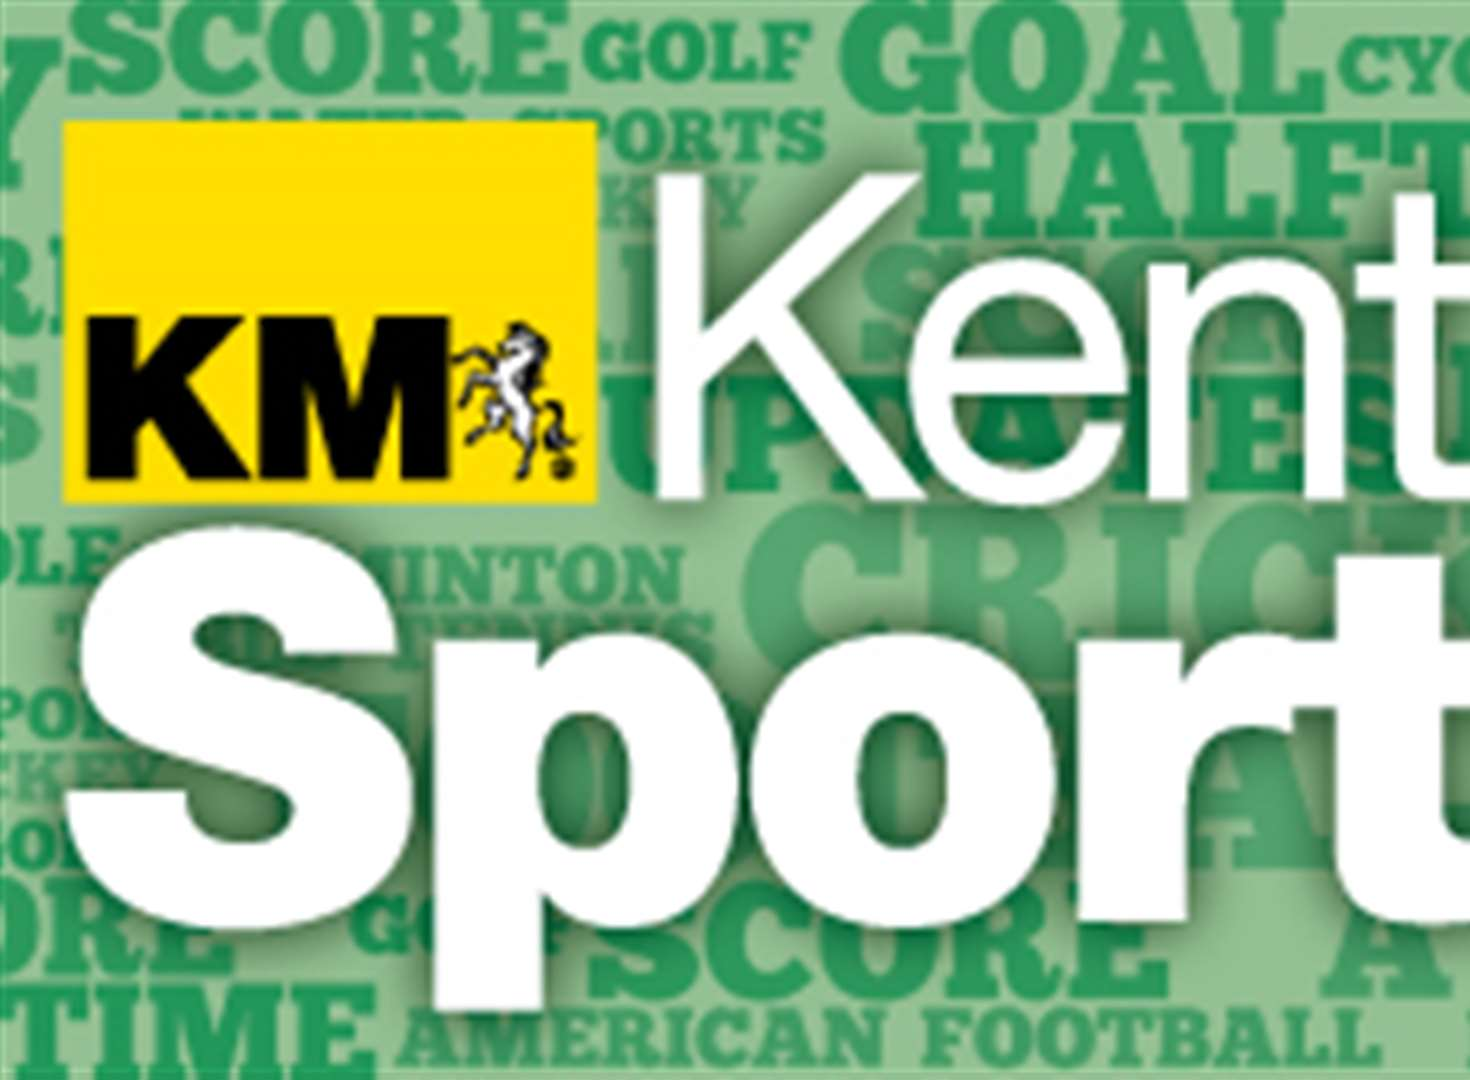 Kent Sportsday - Wednesday, March 26